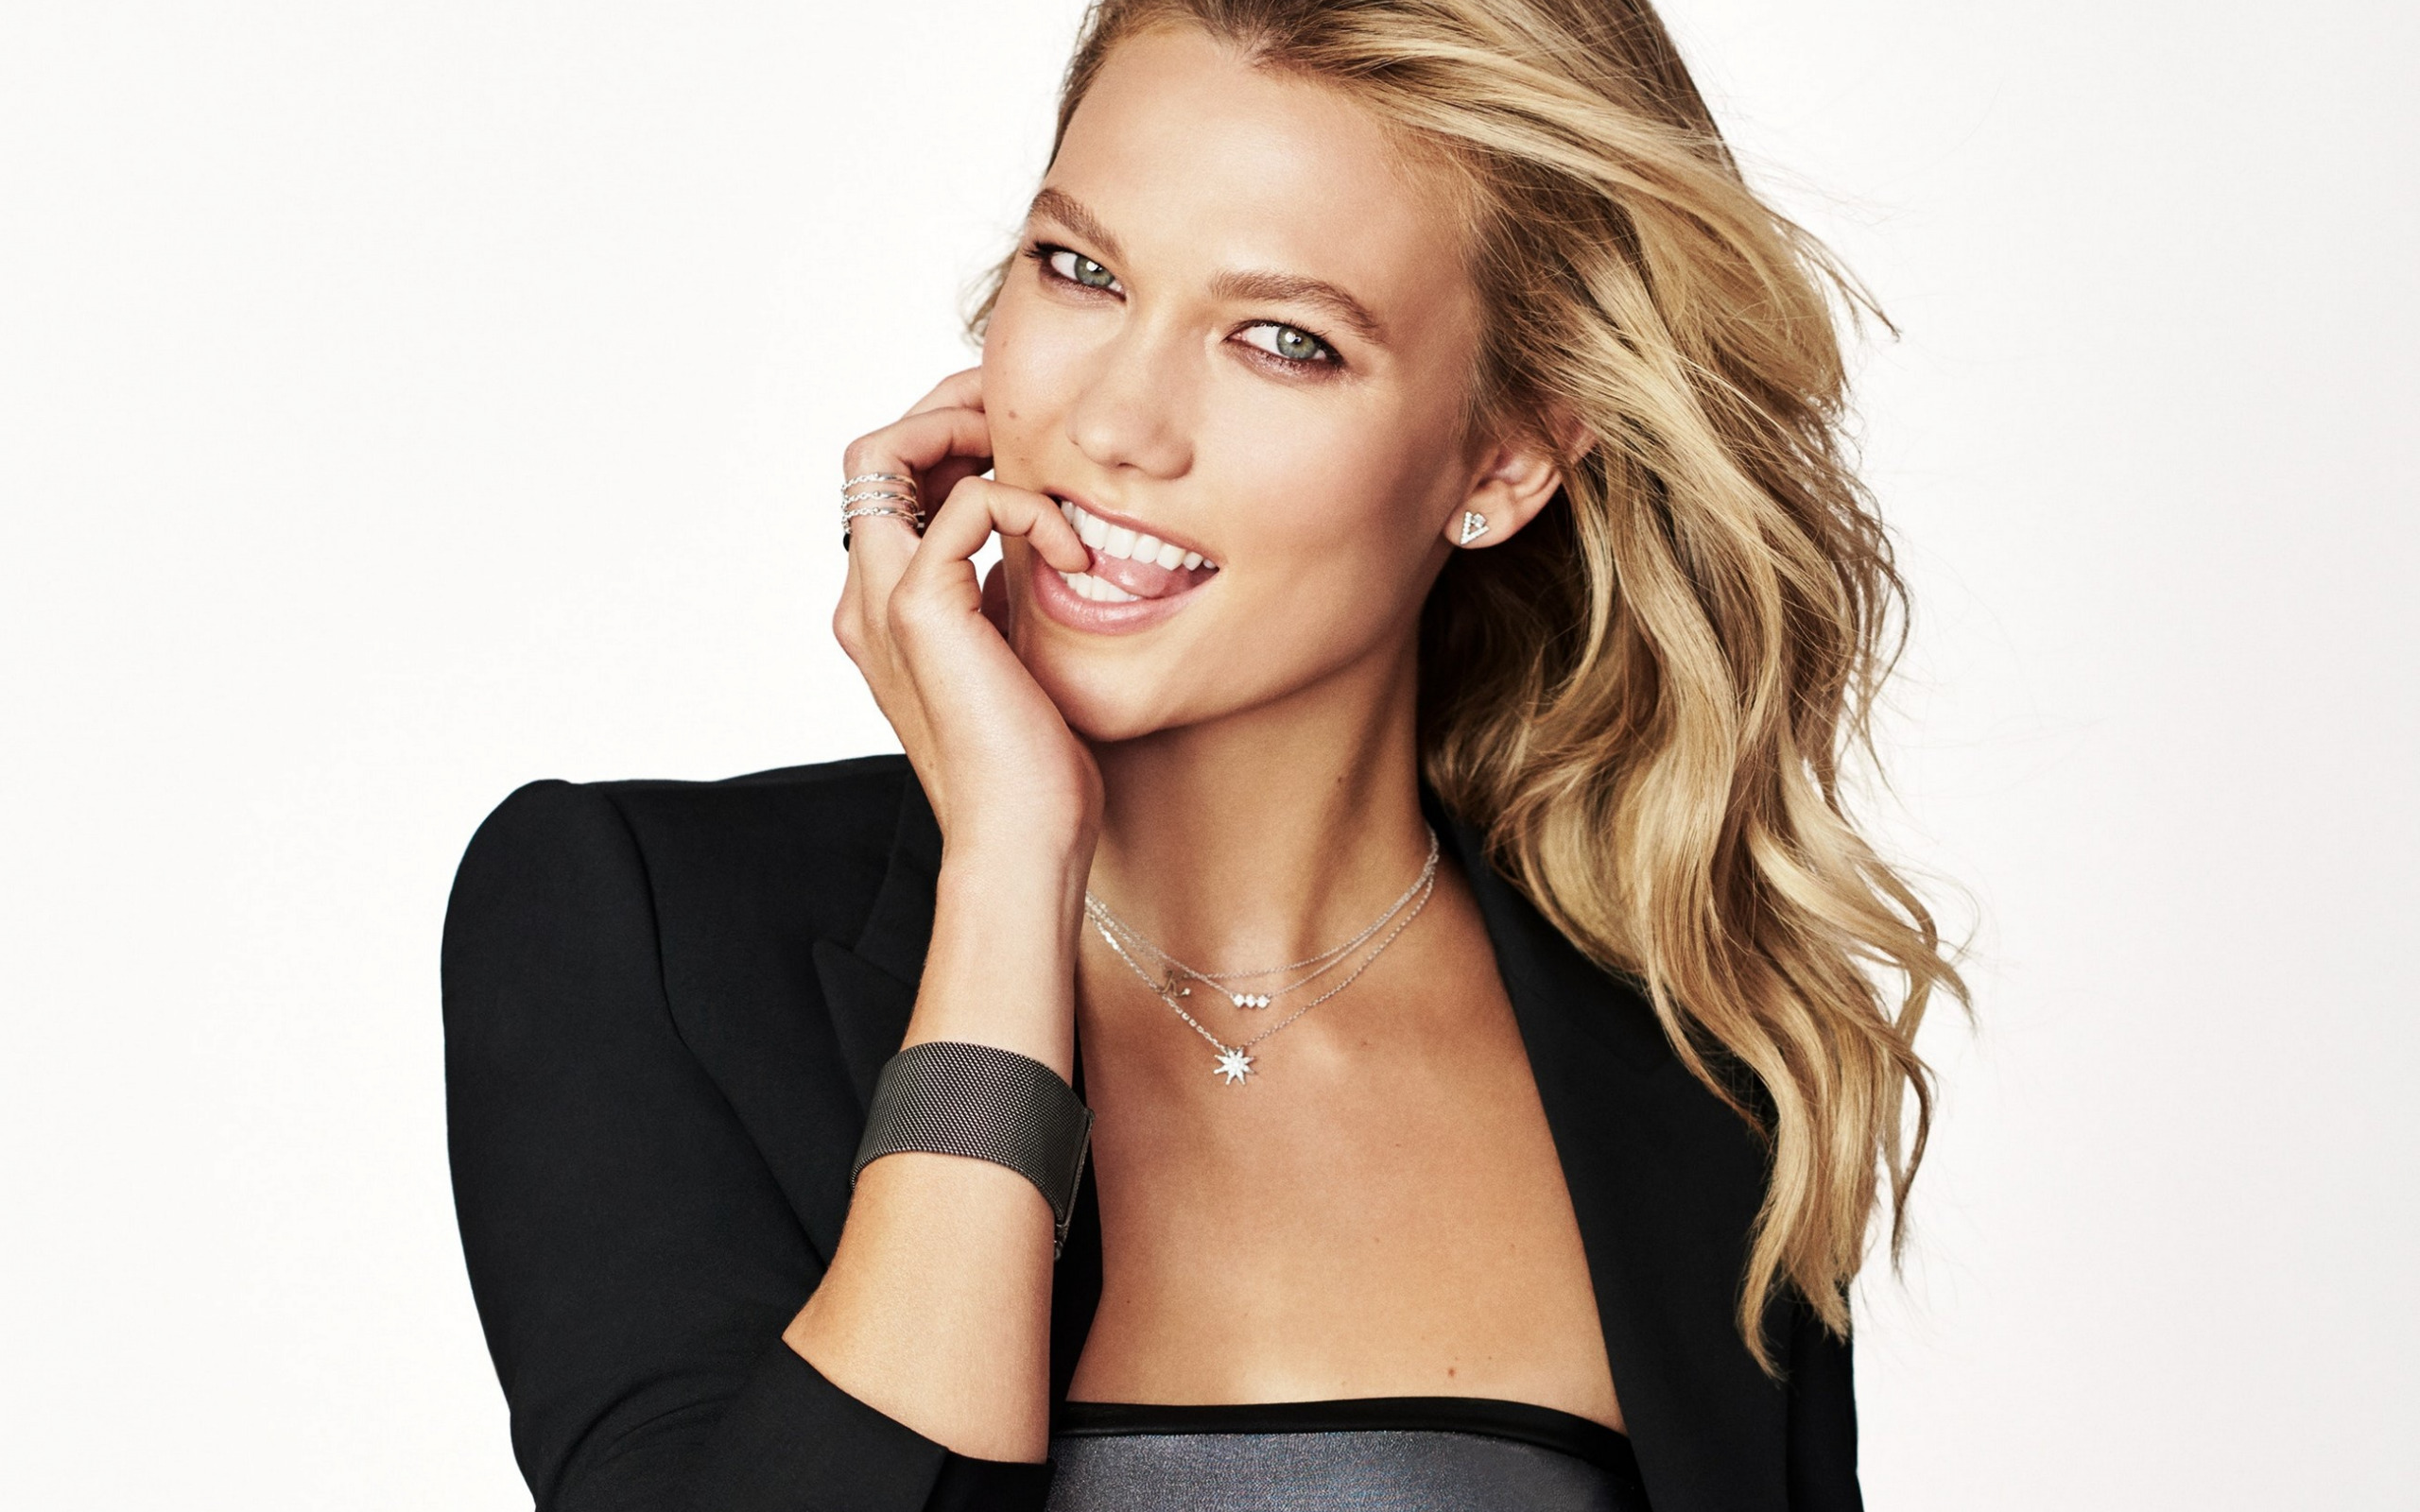 Karlie Kloss, portrait, photo shoot, american fashion model, beautiful woman, american supermodel